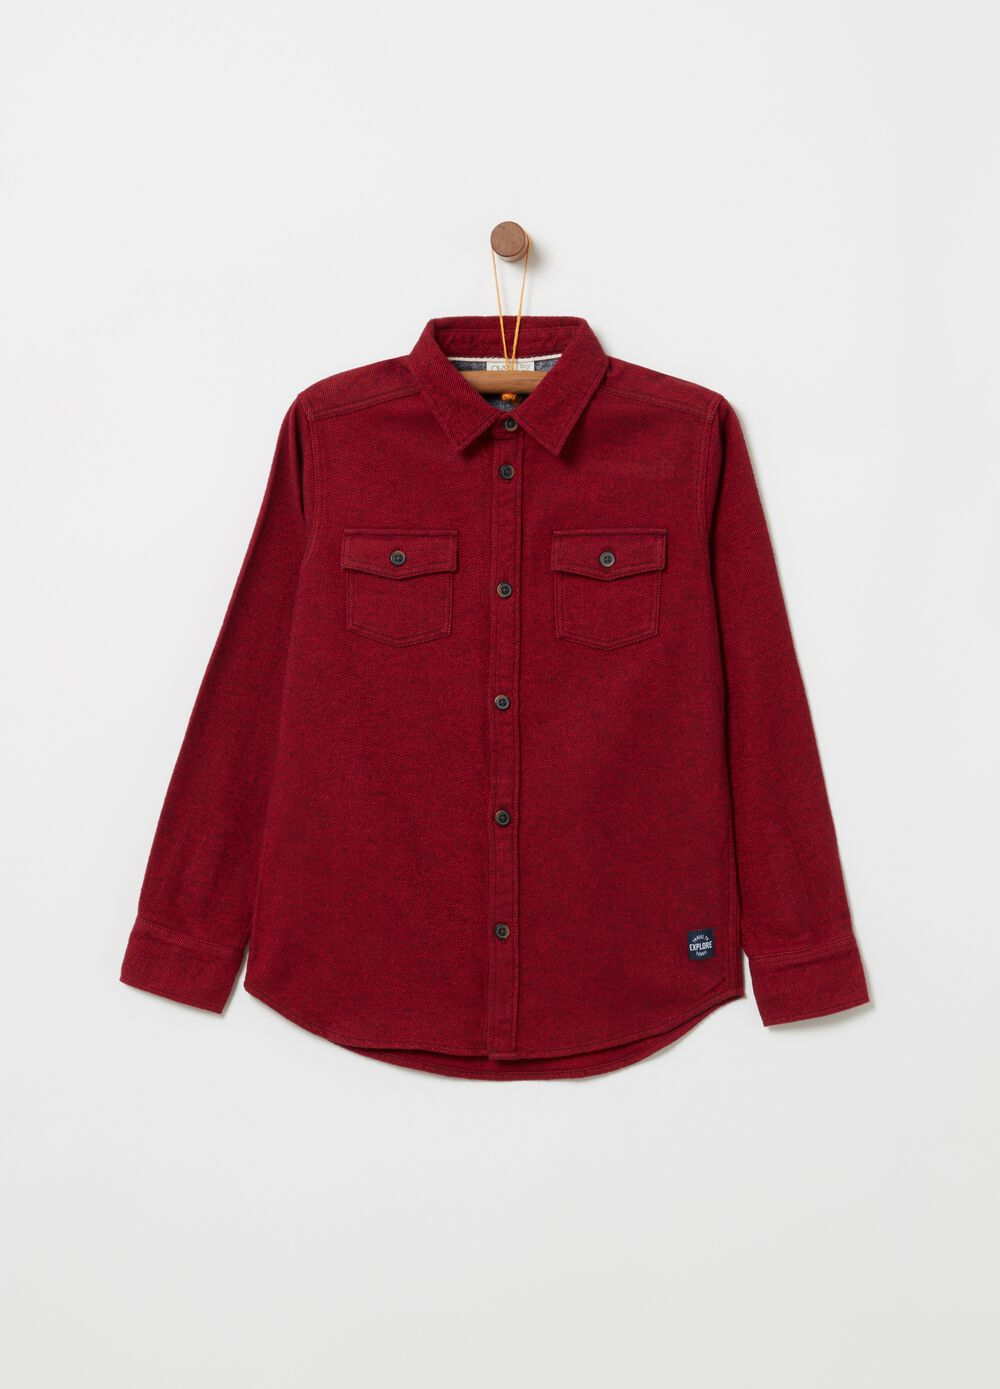 100% cotton flannel shirt.